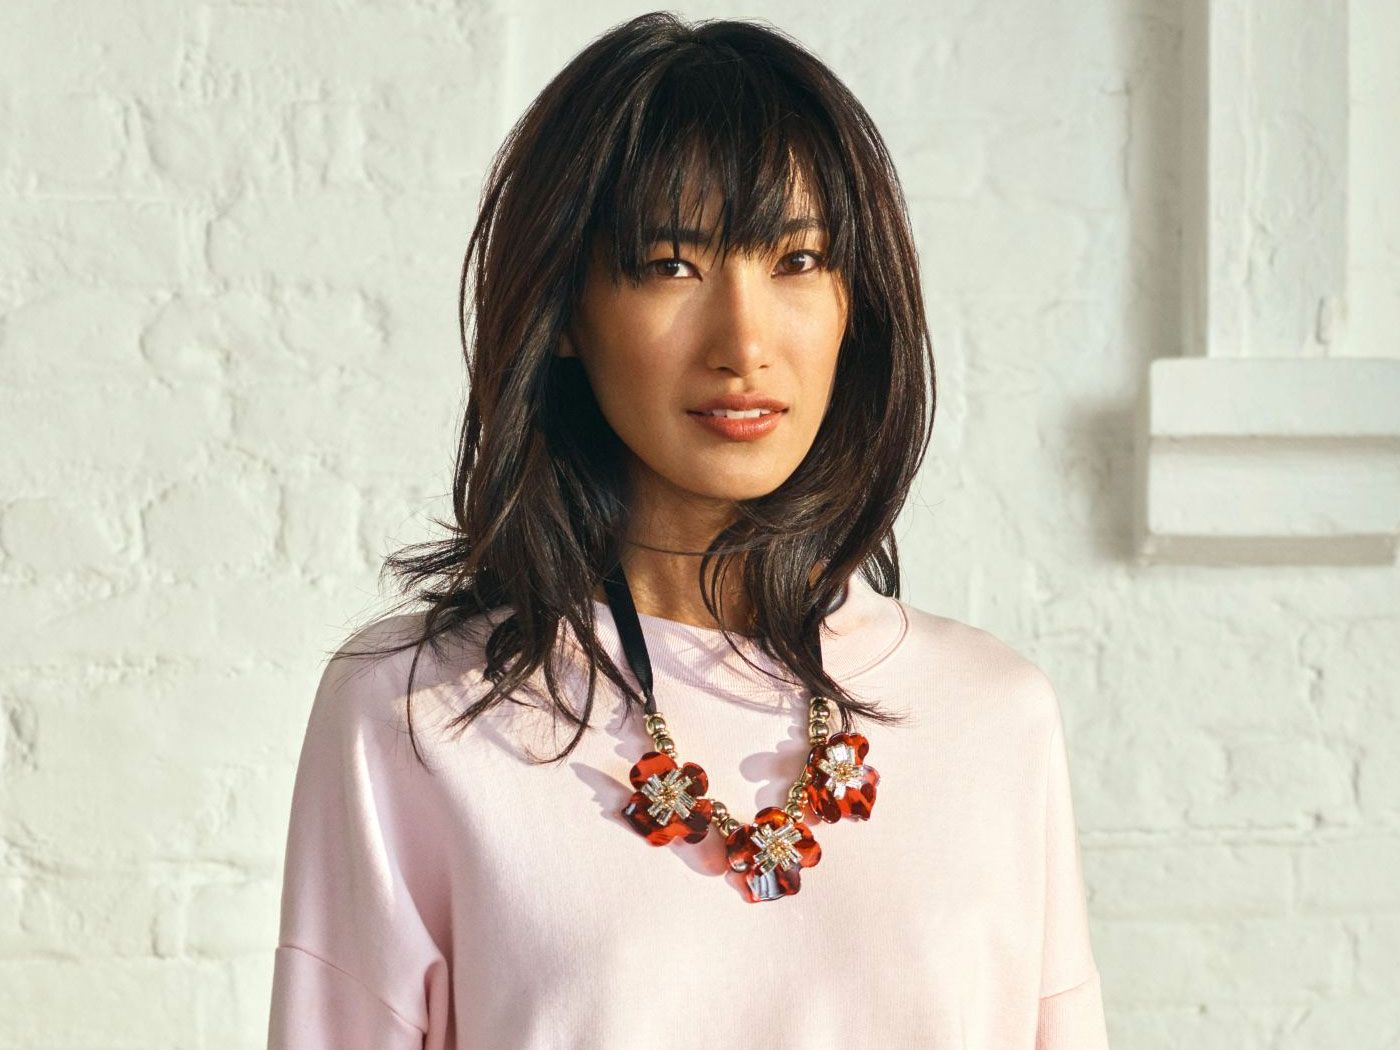 A model wearing a bold statement necklace from fashion retailer John Lewis